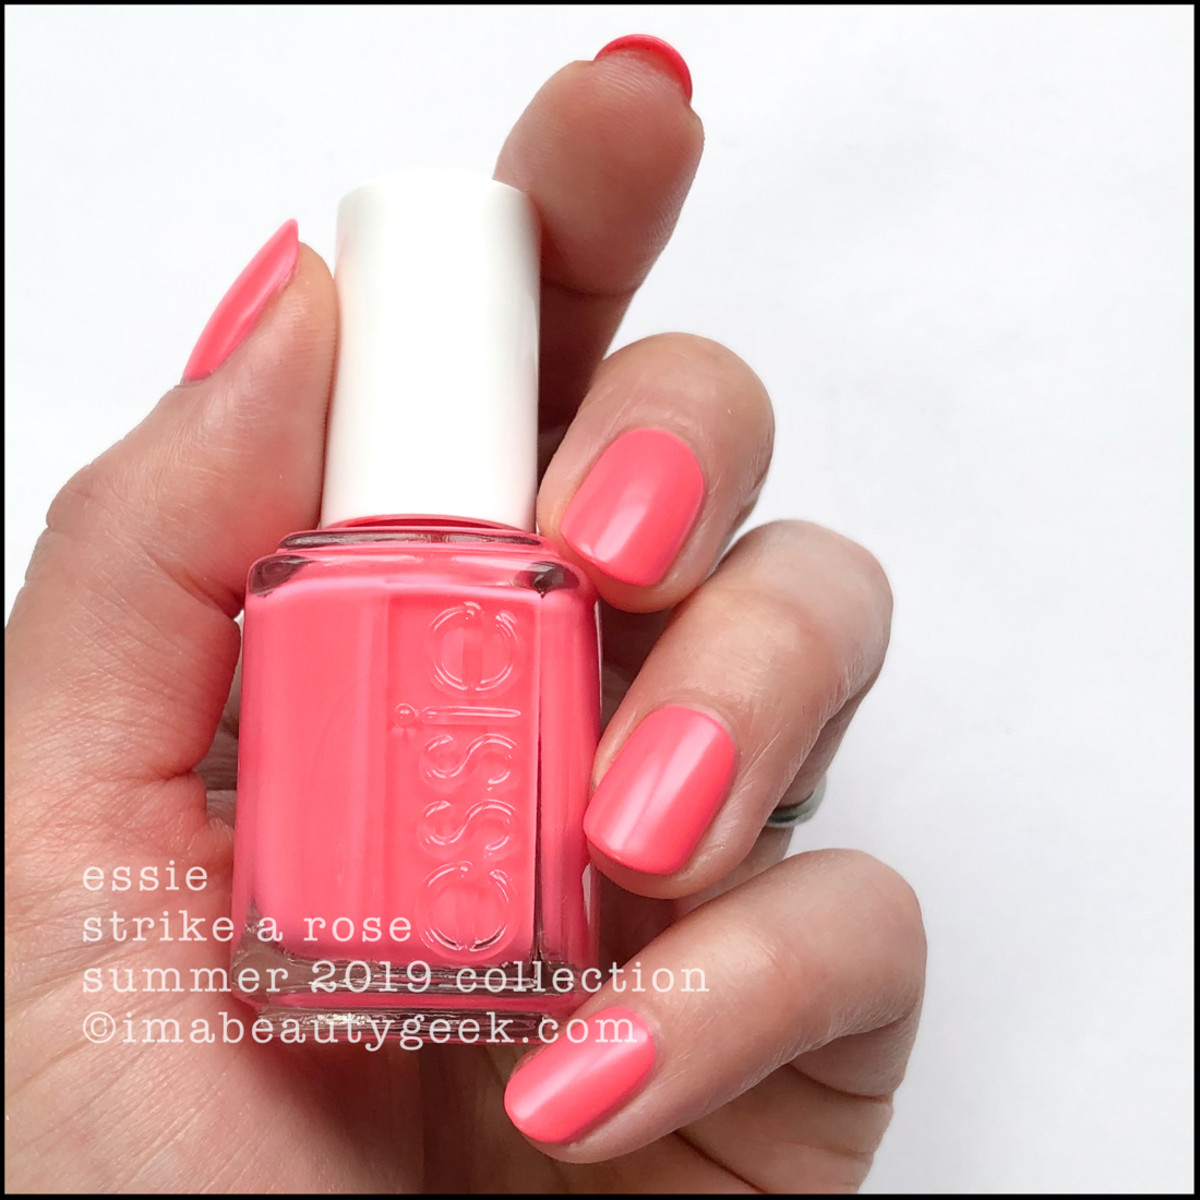 Essie Strike a Rose - Essie Summer 2019 Neons